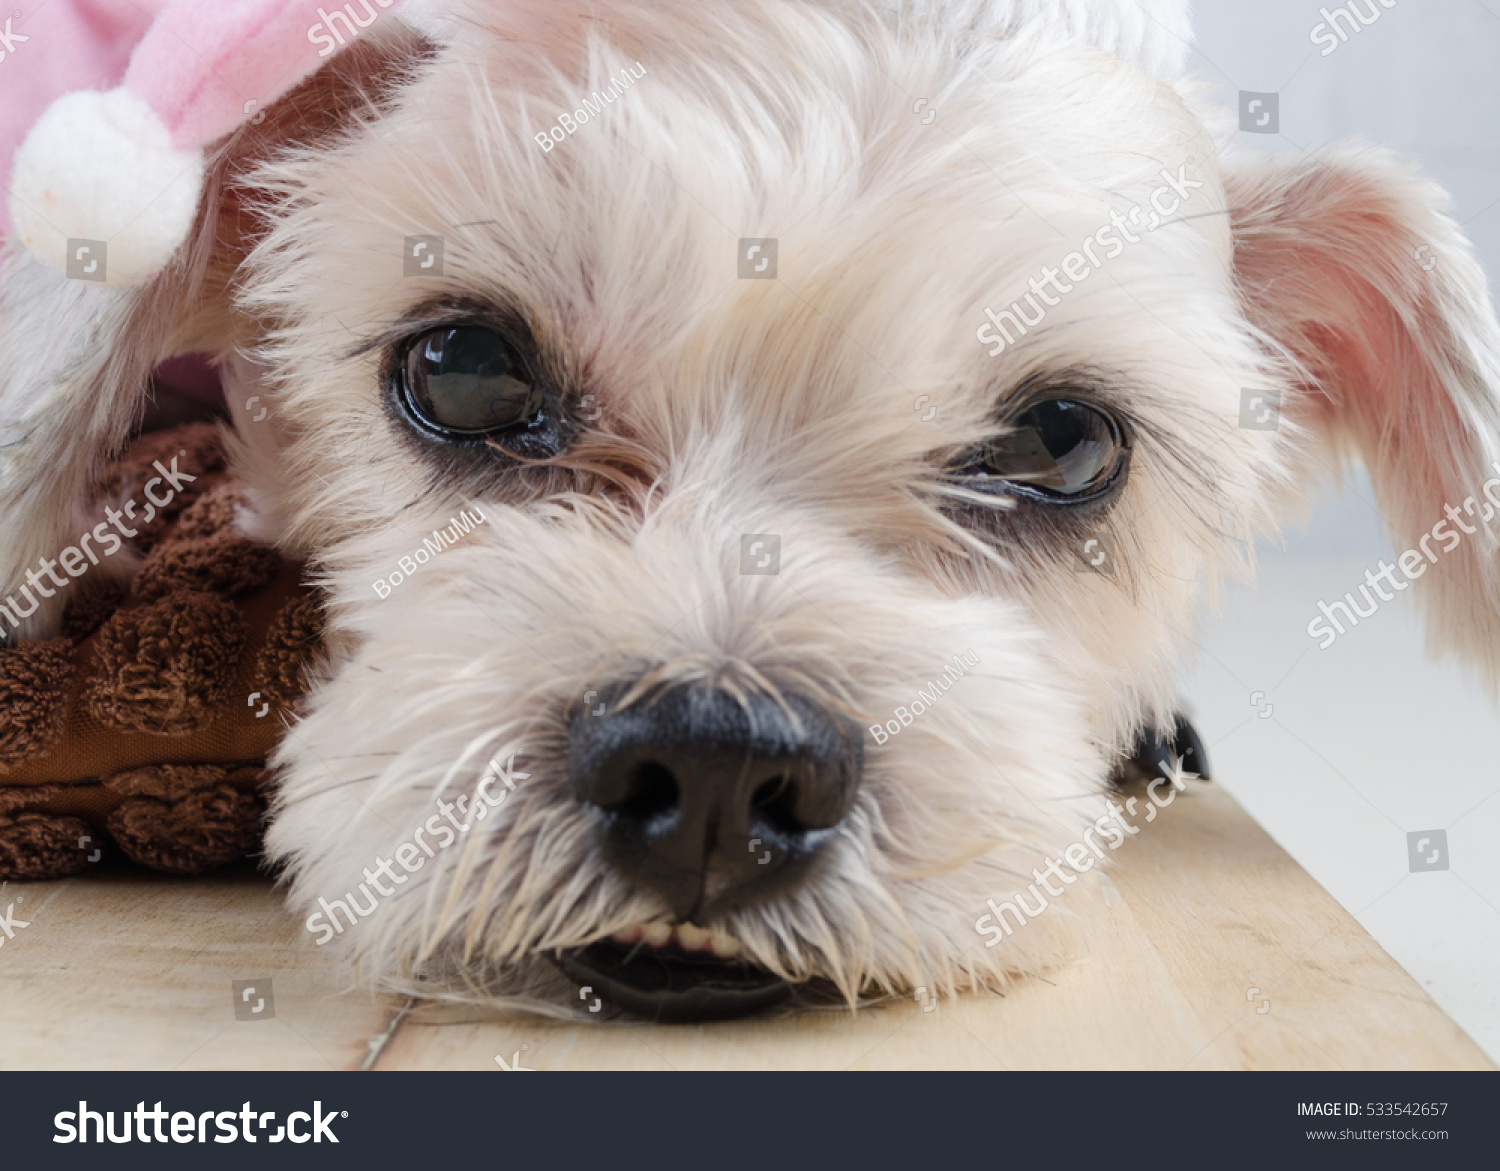 Cute Short Hair Mixed Breed Puppy Shih Tzu Schnauzer With